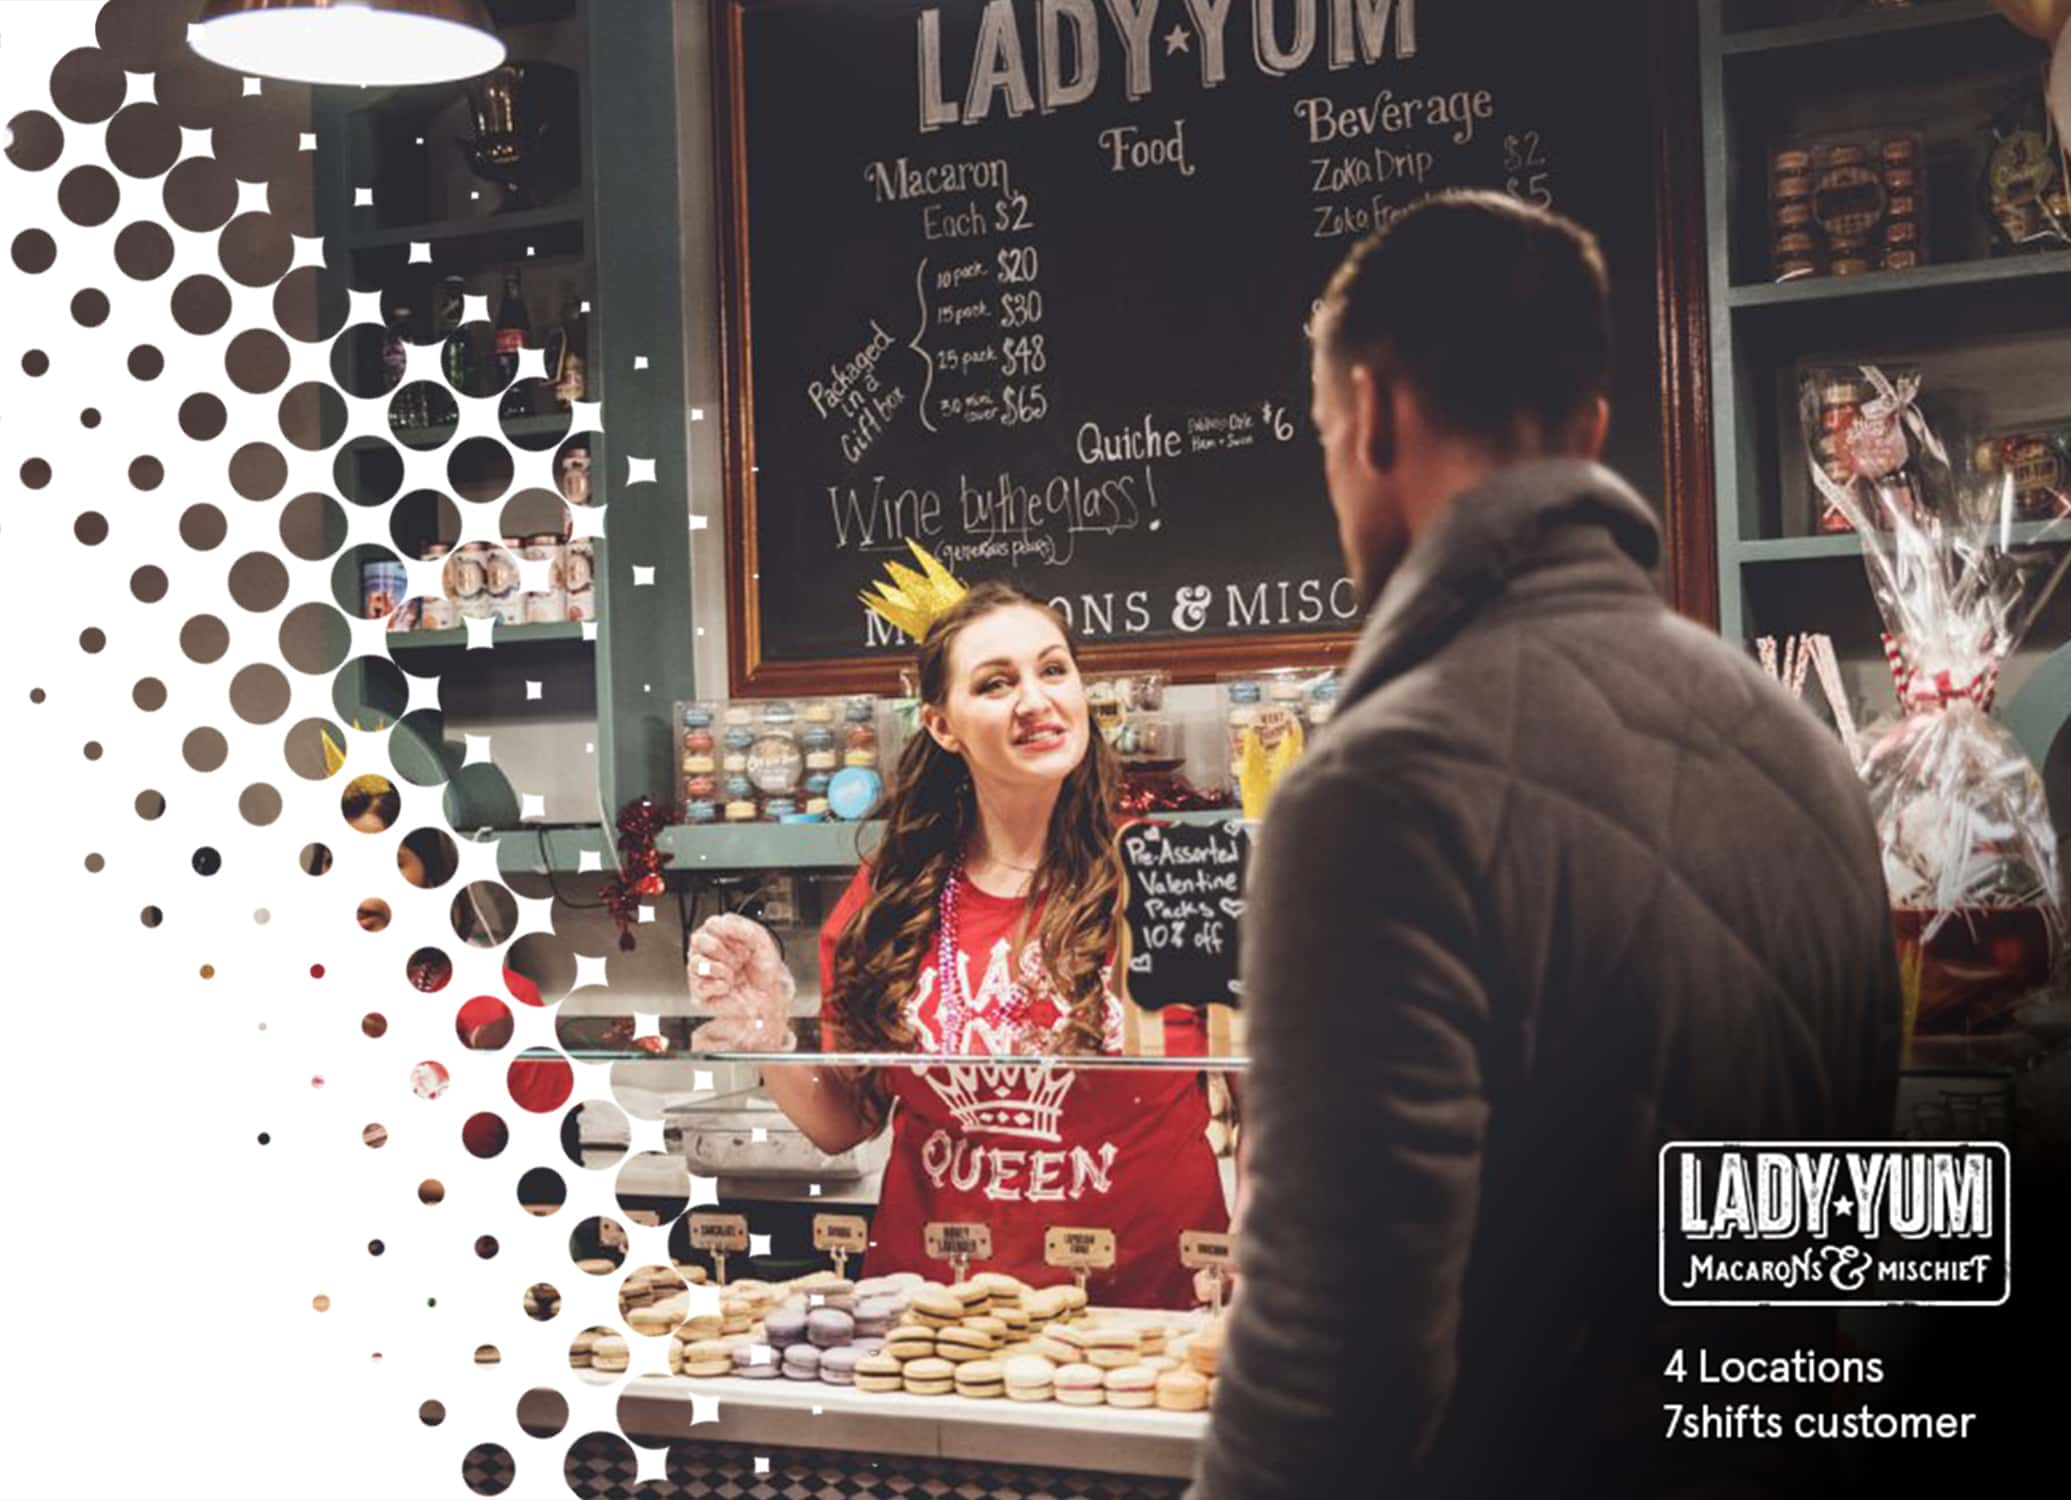 Lady Yum a 4 location 7shifts client restaurant image